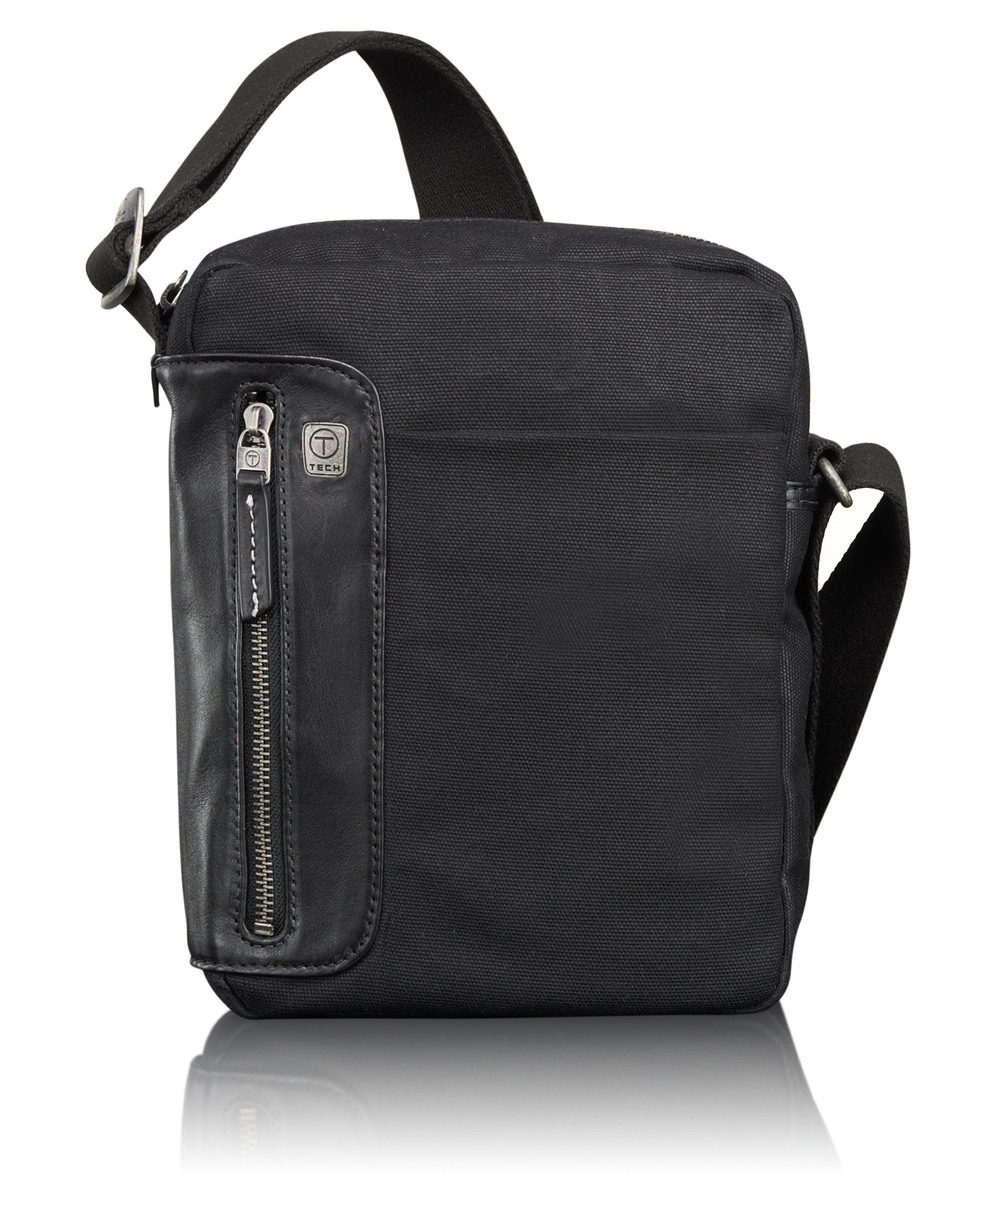 55100 Black T-Tech Forge Pittsburgh Small Crossbody .jpg